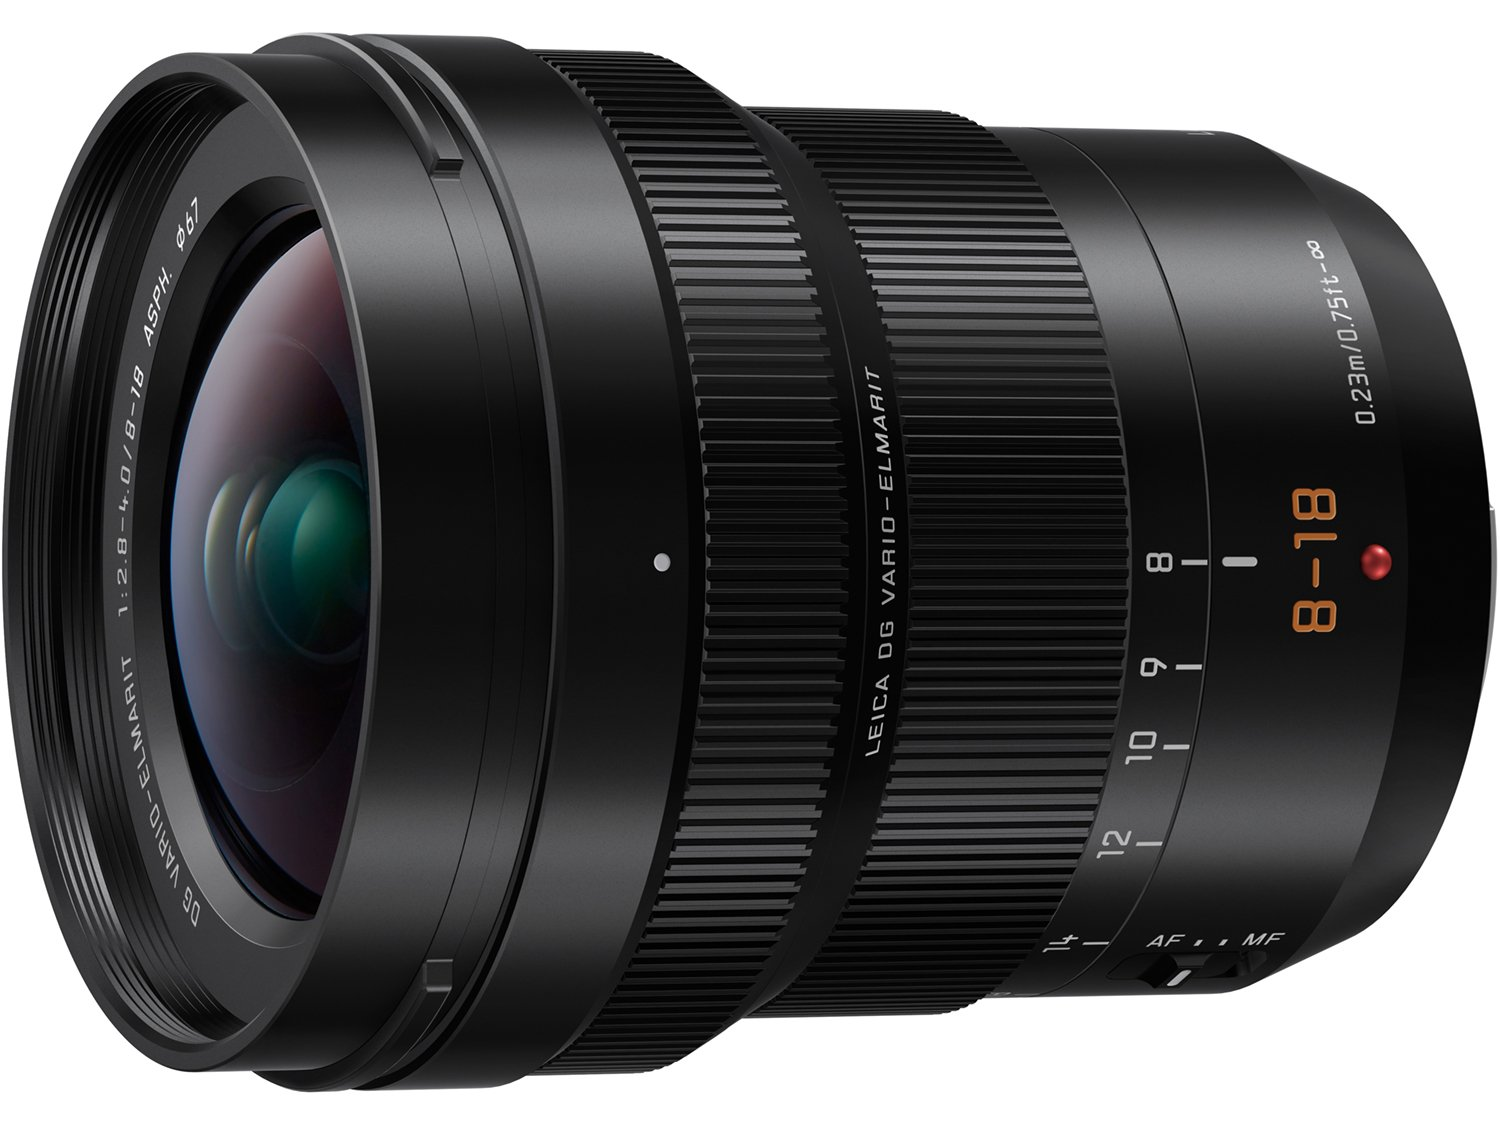 PANASONIC LUMIX Professional 8-18mm Camera Lens, G LEICA DG VARIO-ELMARIT, F2.8-4.0 ASPH, Mirrorless Micro Four Thirds, H-E08018 (Black) by Panasonic